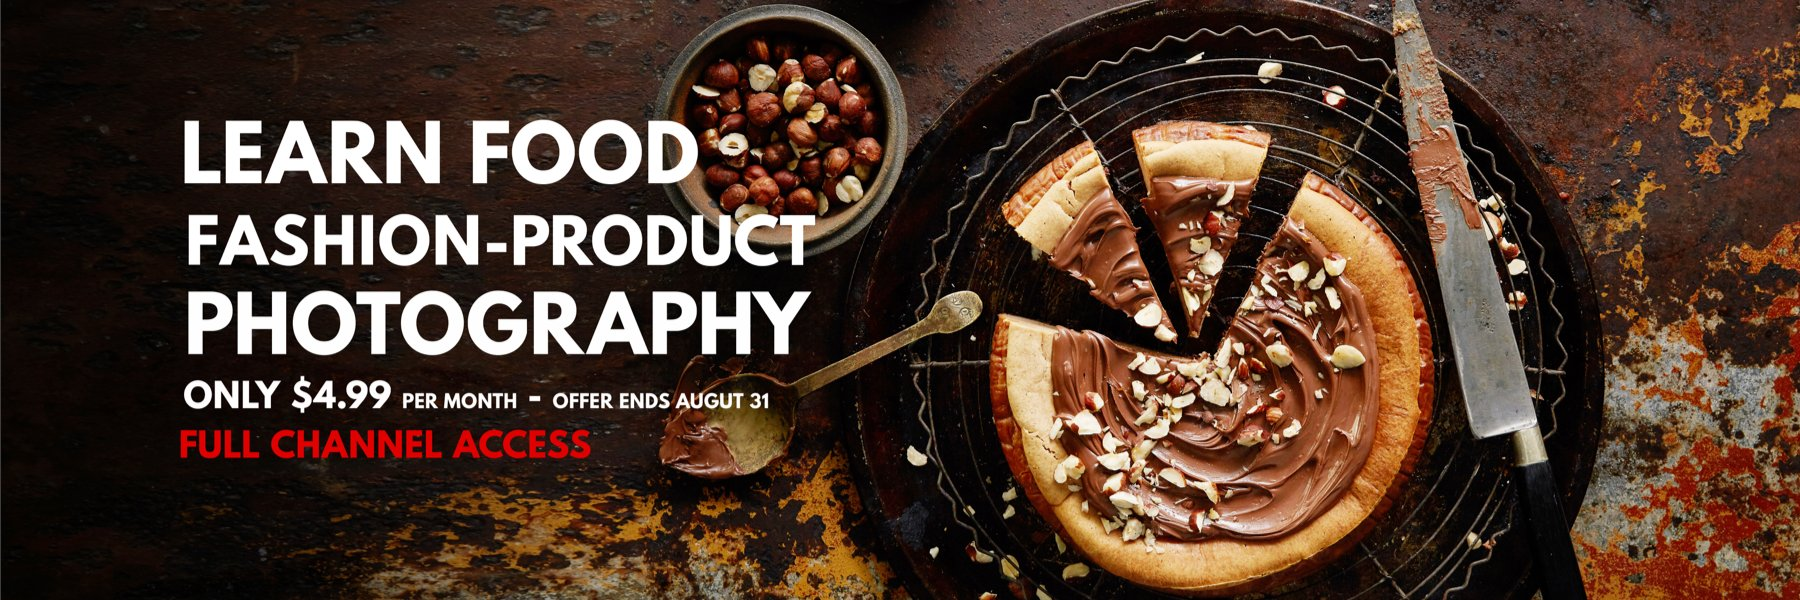 LEARN FOOD - PRODUCT - FASHION PHOTOGRAPHY ONLINE